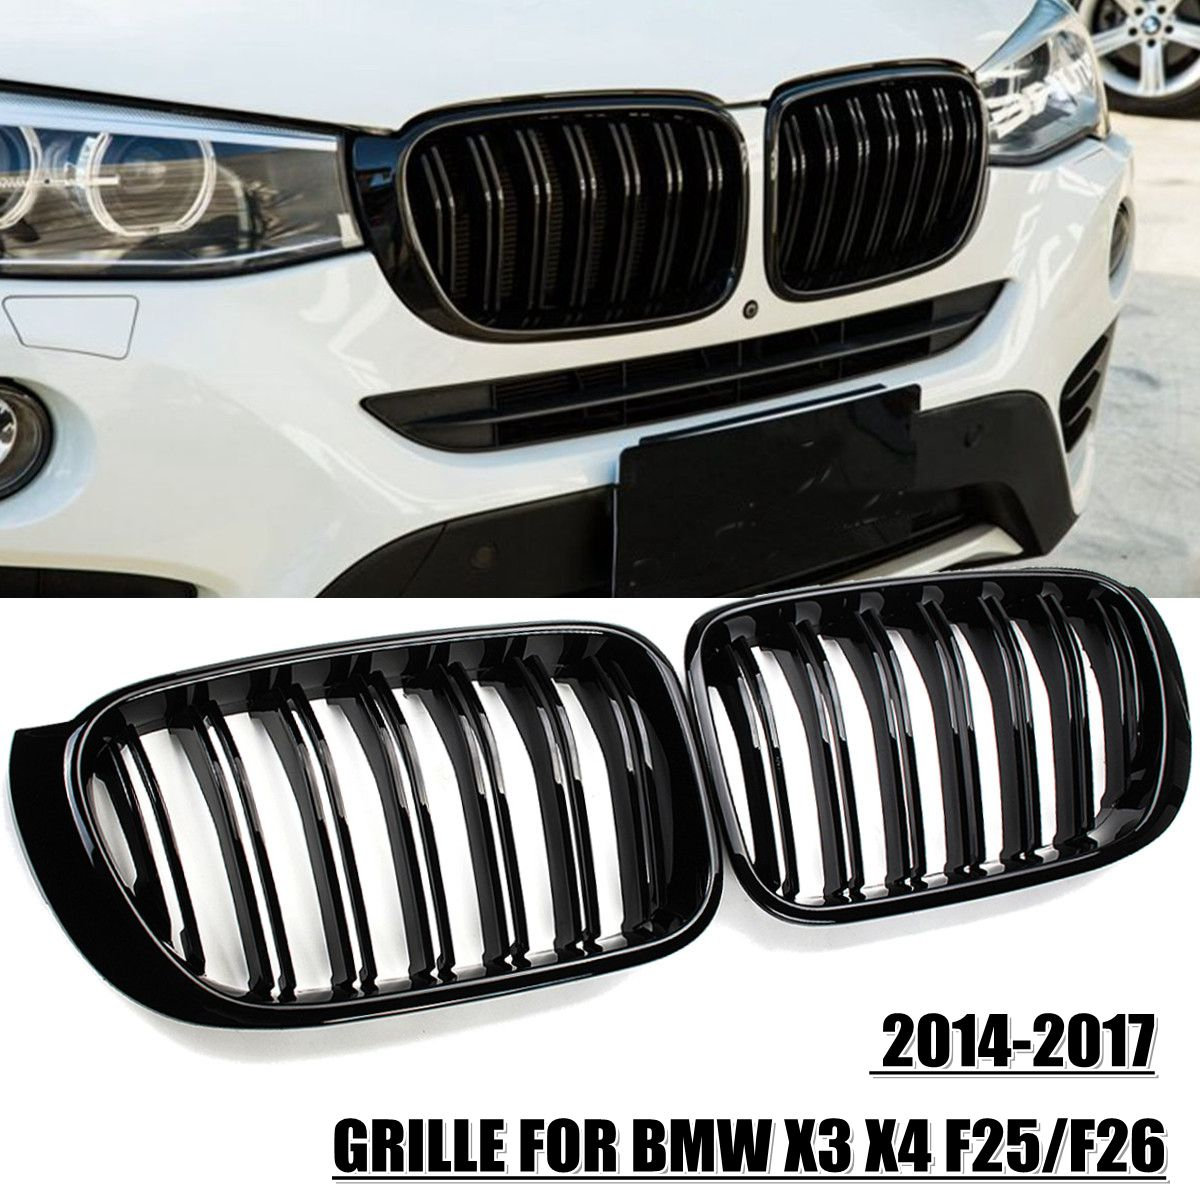 2X M Stijl Auto Grille Grill Mesh Netto Trim Strip Cover Gloss Black Voor BMW X3 X4 F25 F26 2014 2015 2016 2017